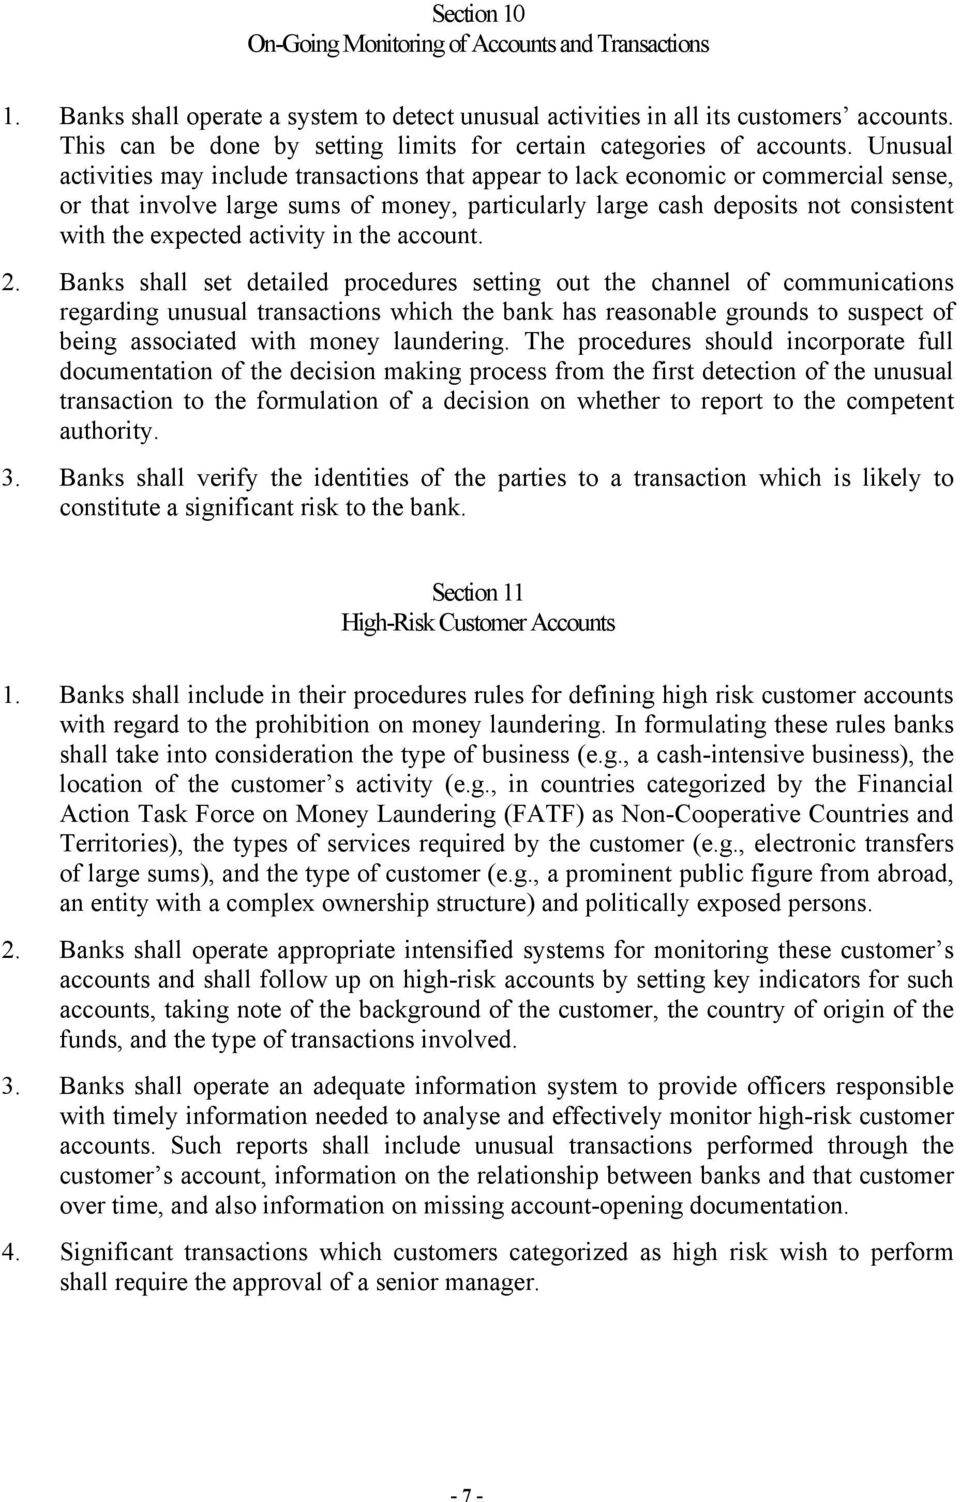 Unusual activities may include transactions that appear to lack economic or commercial sense, or that involve large sums of money, particularly large cash deposits not consistent with the expected